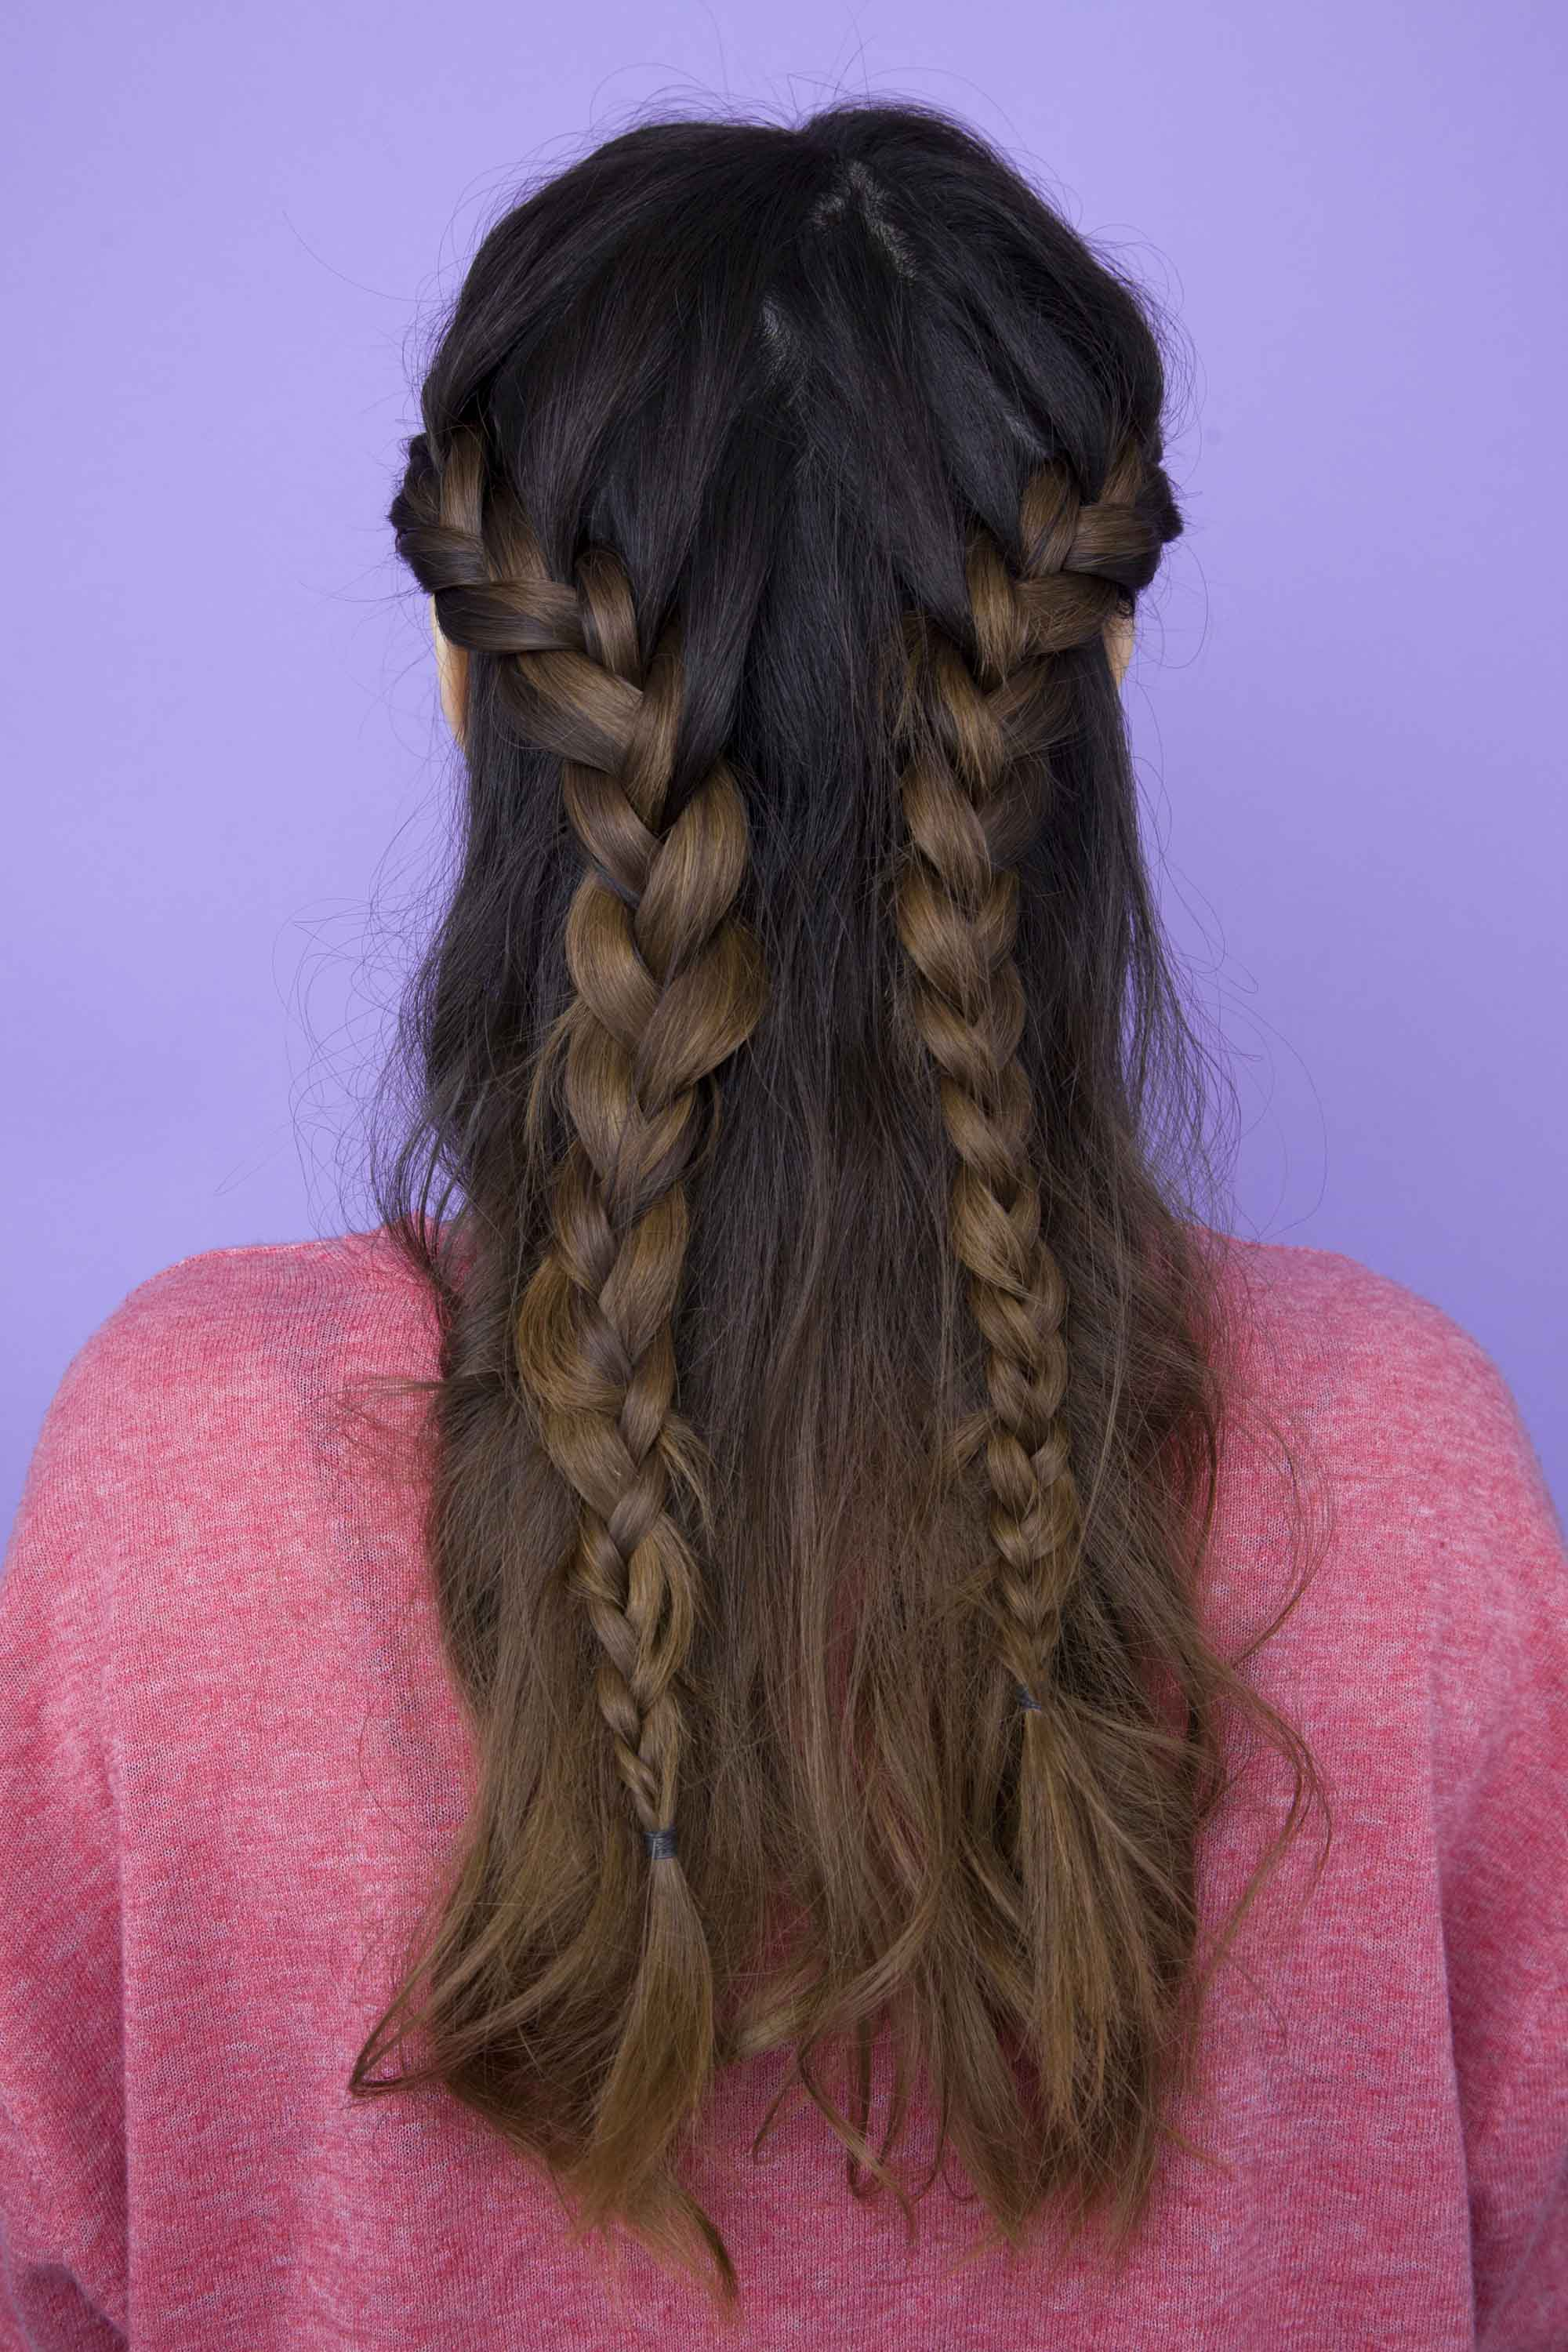 half up half down braid: young woman showing back view of braided hair hairstyle